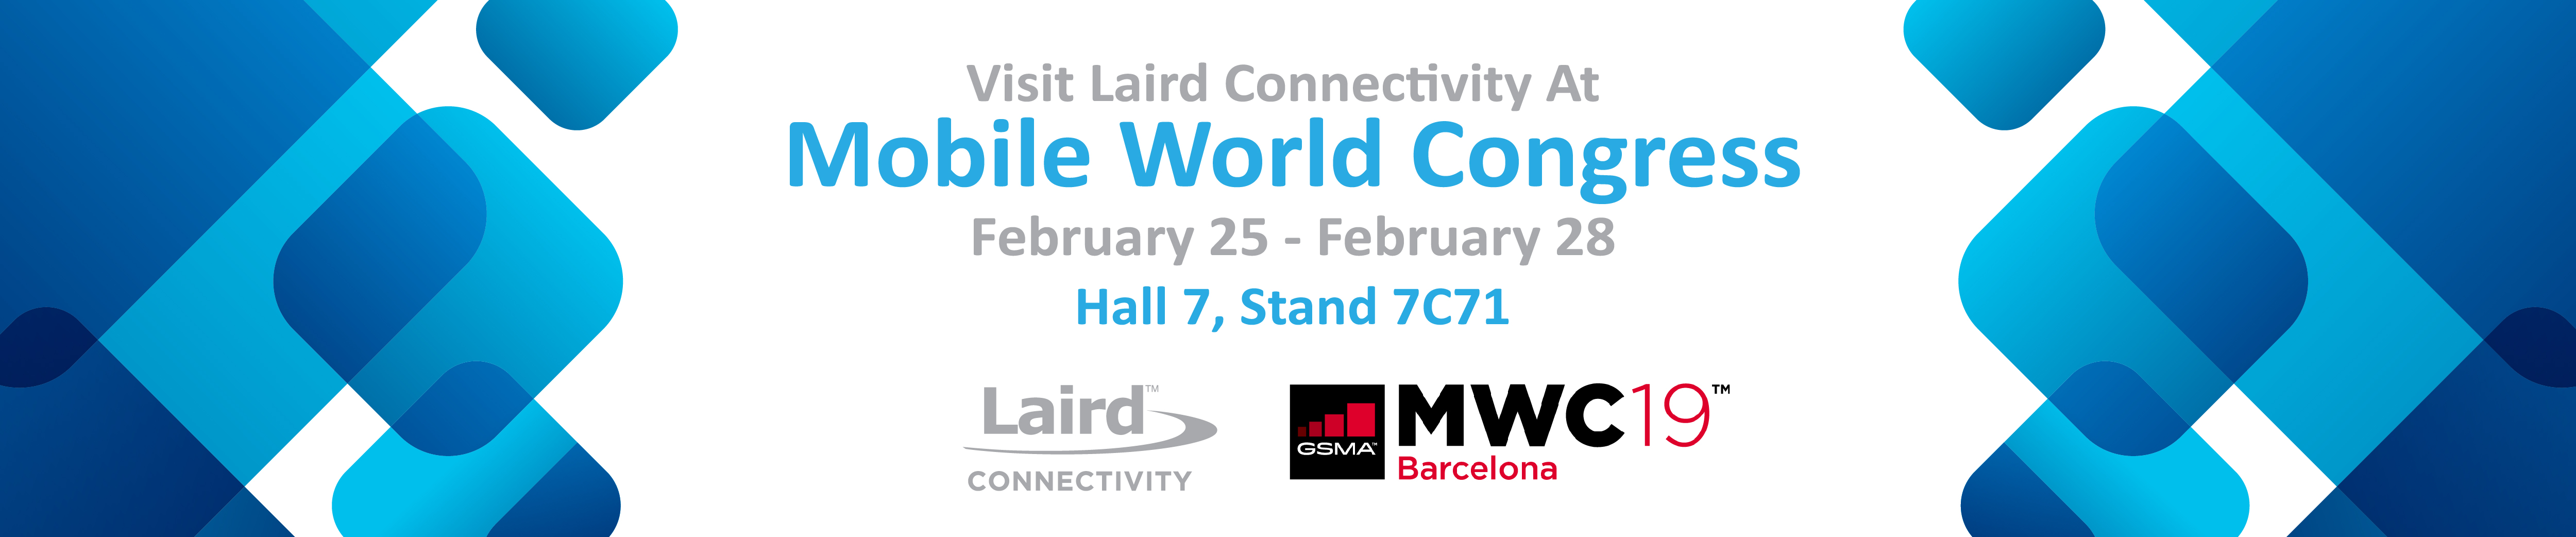 Laird Connectivity at Mobile World Congress 2019